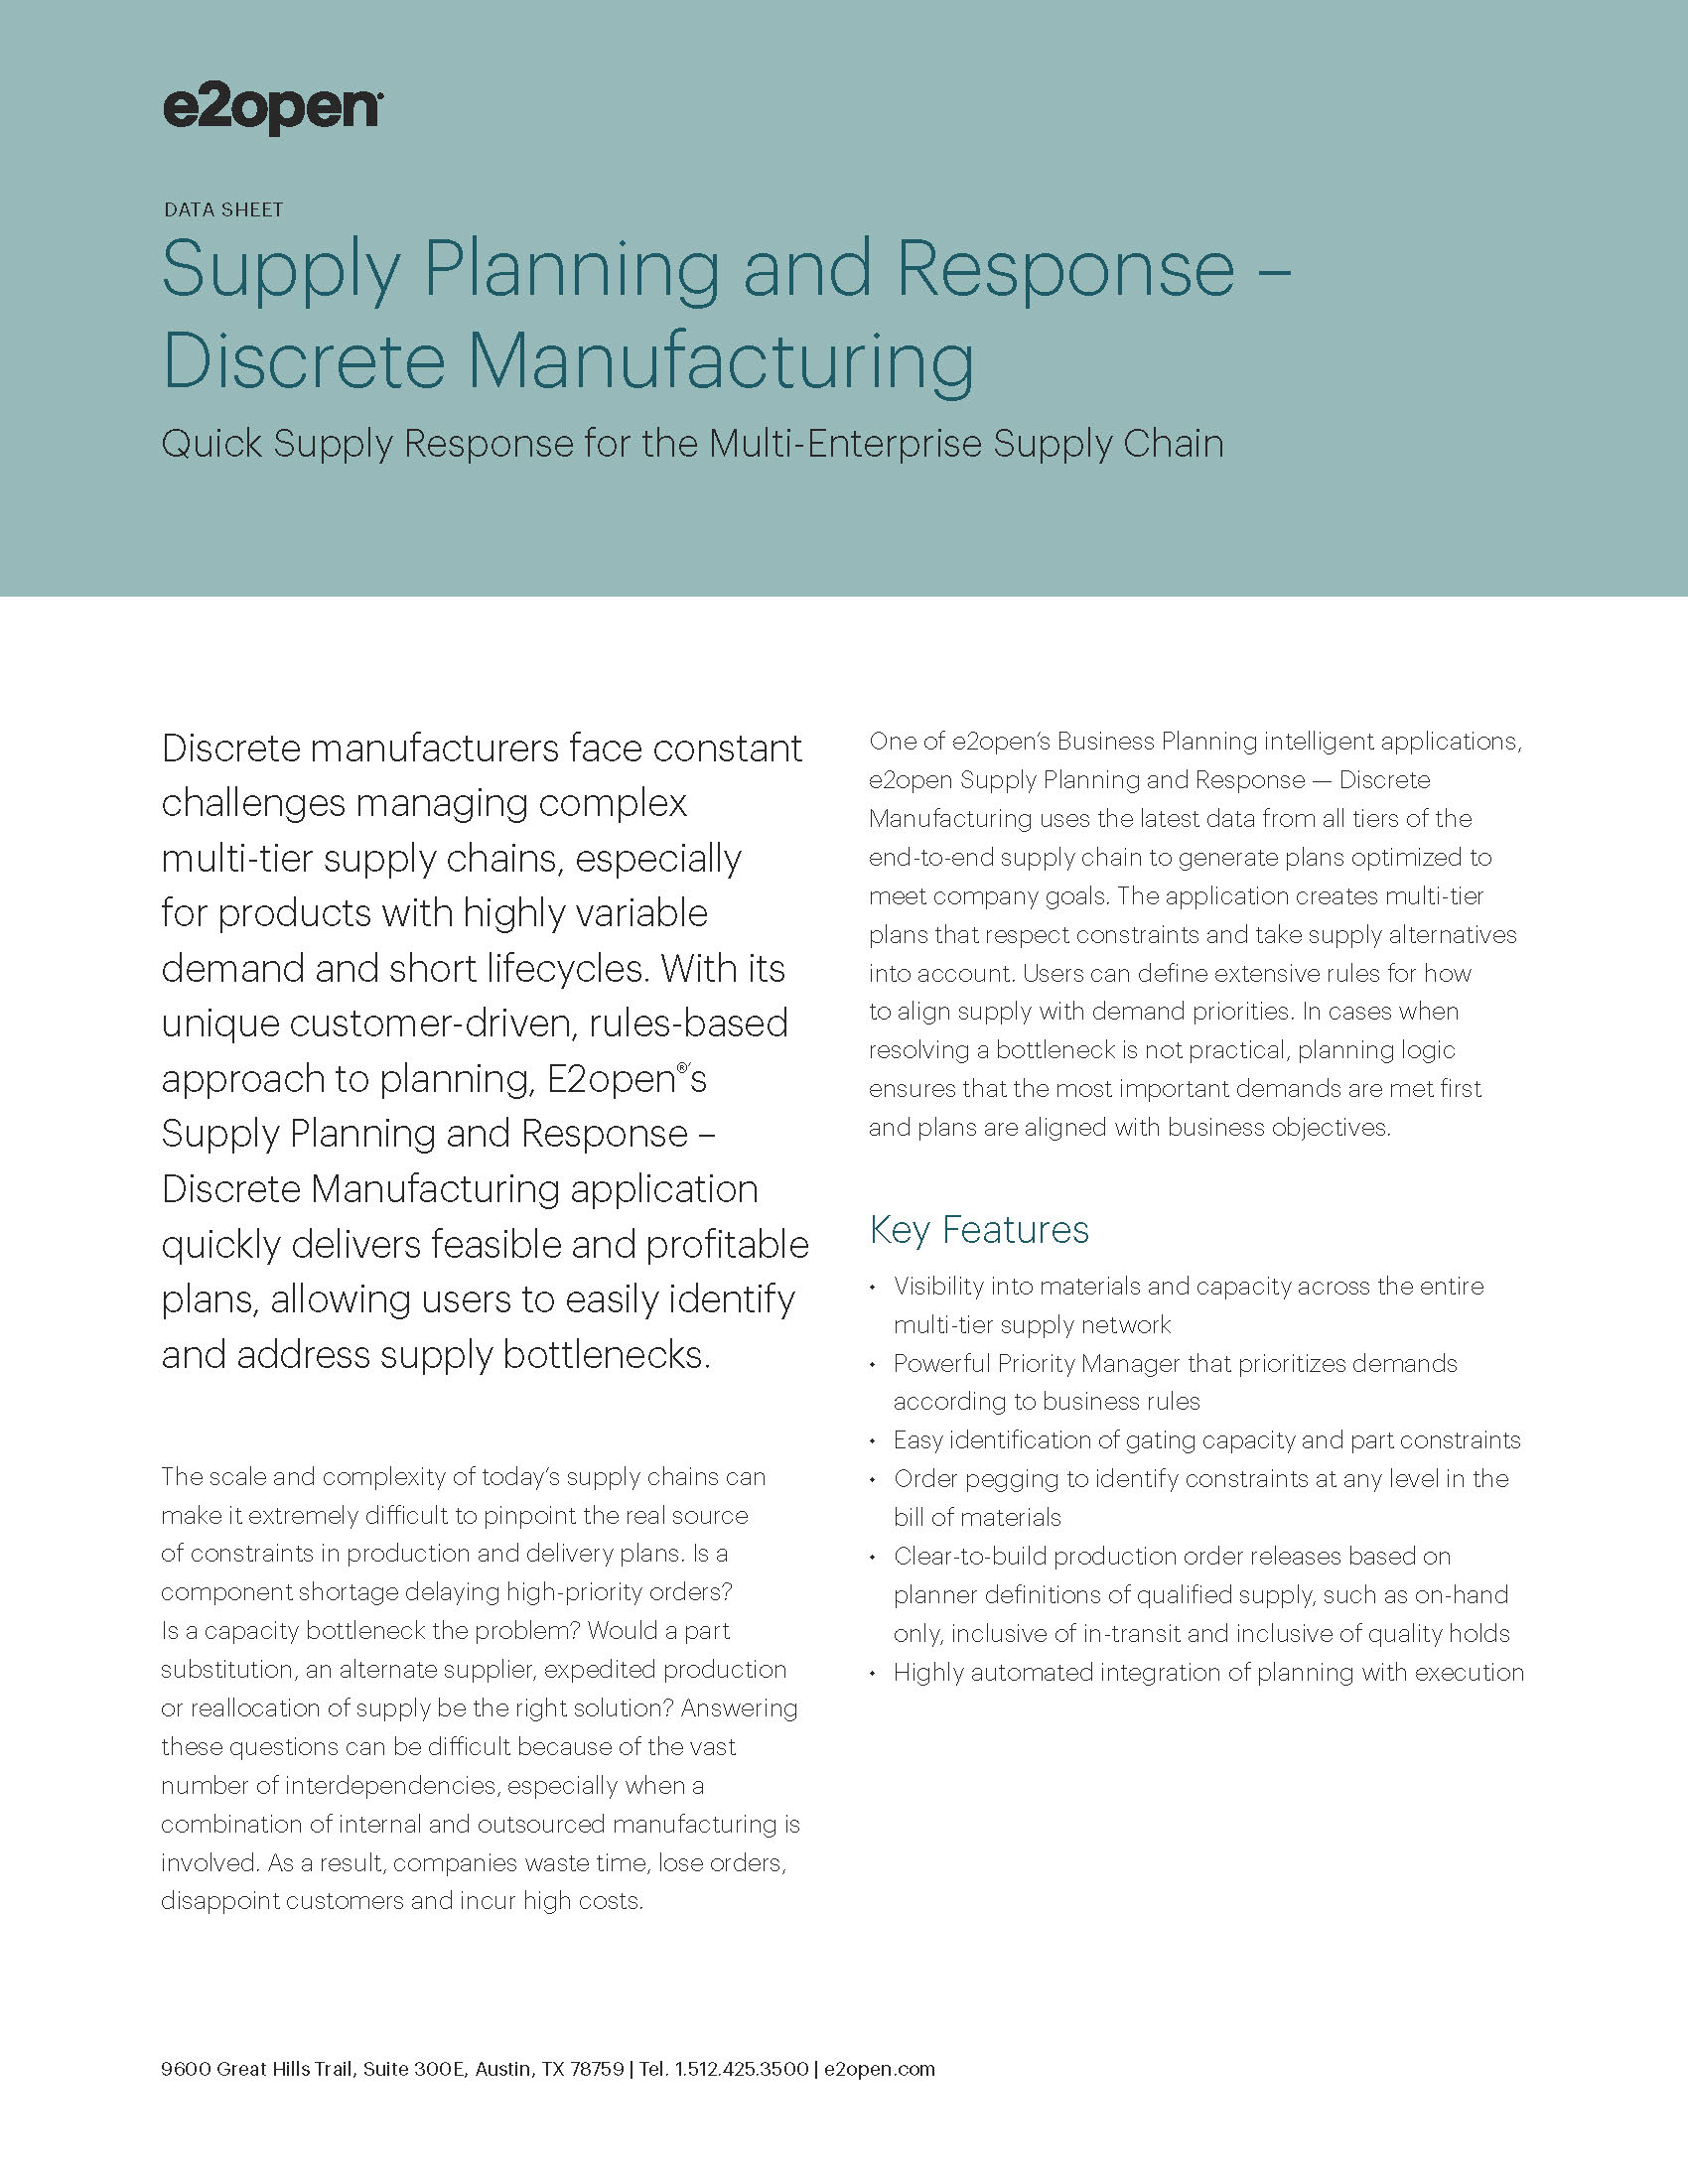 E2open Supply Planning and Response – Discrete Manufacturing